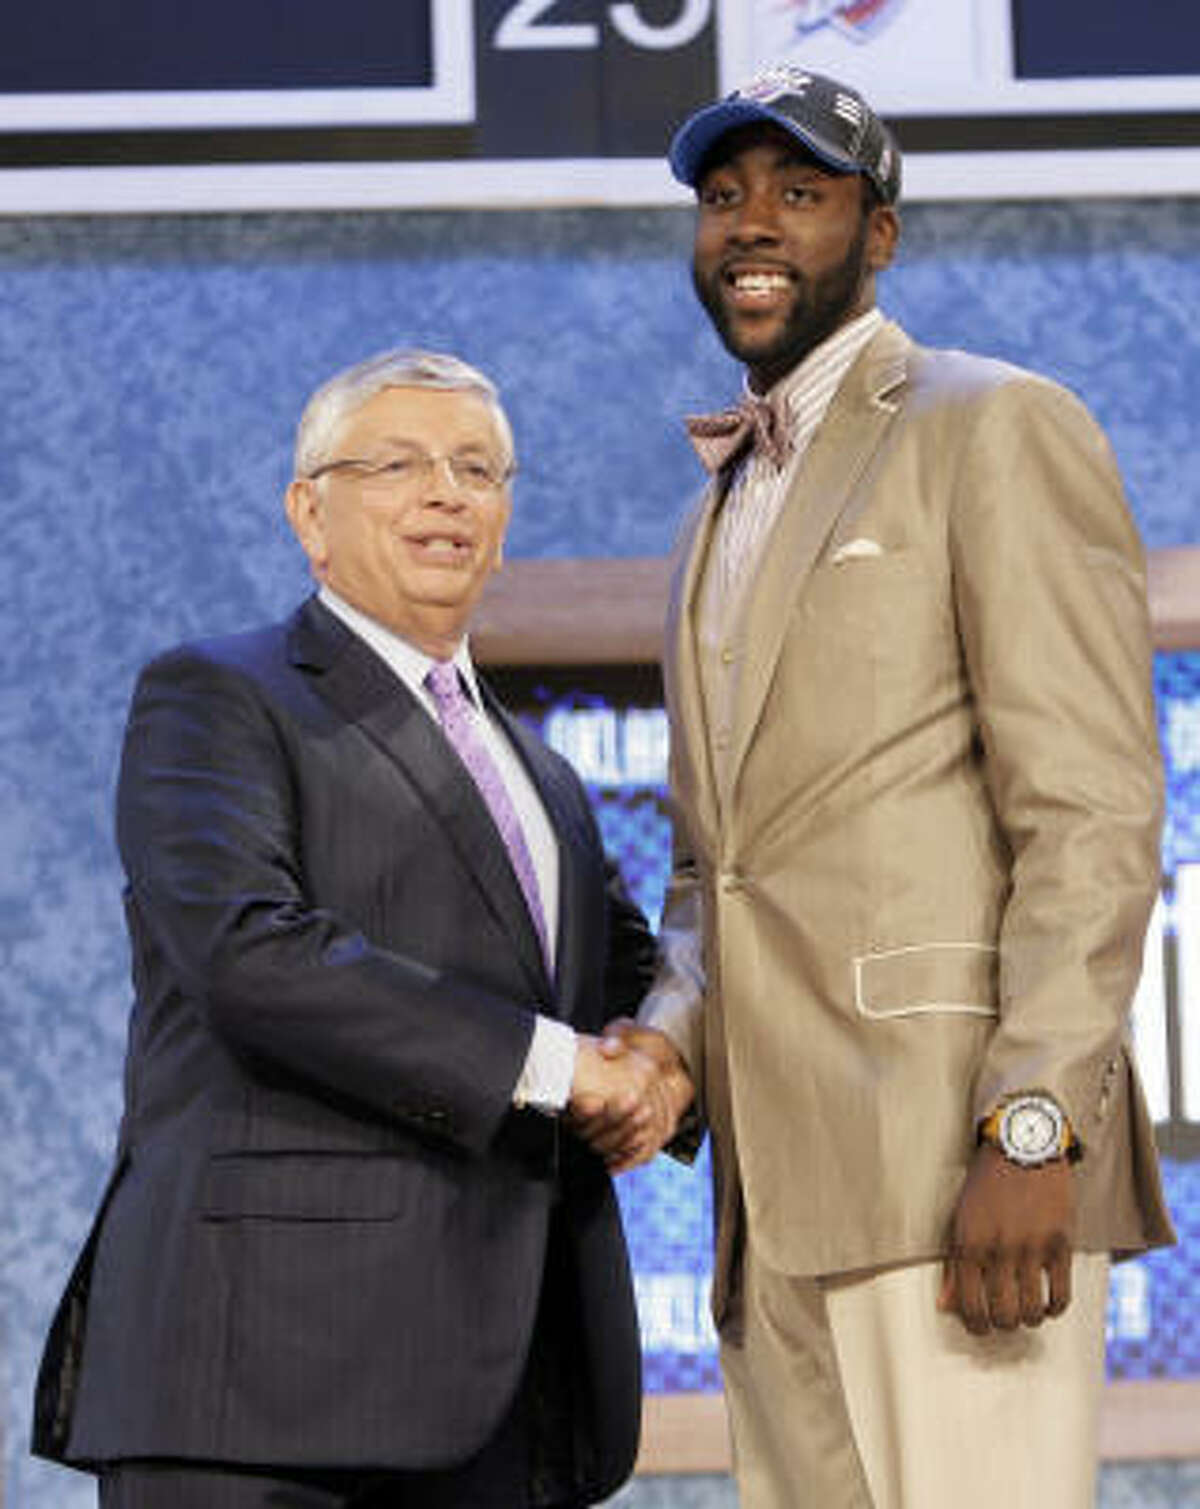 3. Oklahoma City Thunder Oklahoma City Thunder select James Harden, a guard from Arizona State.